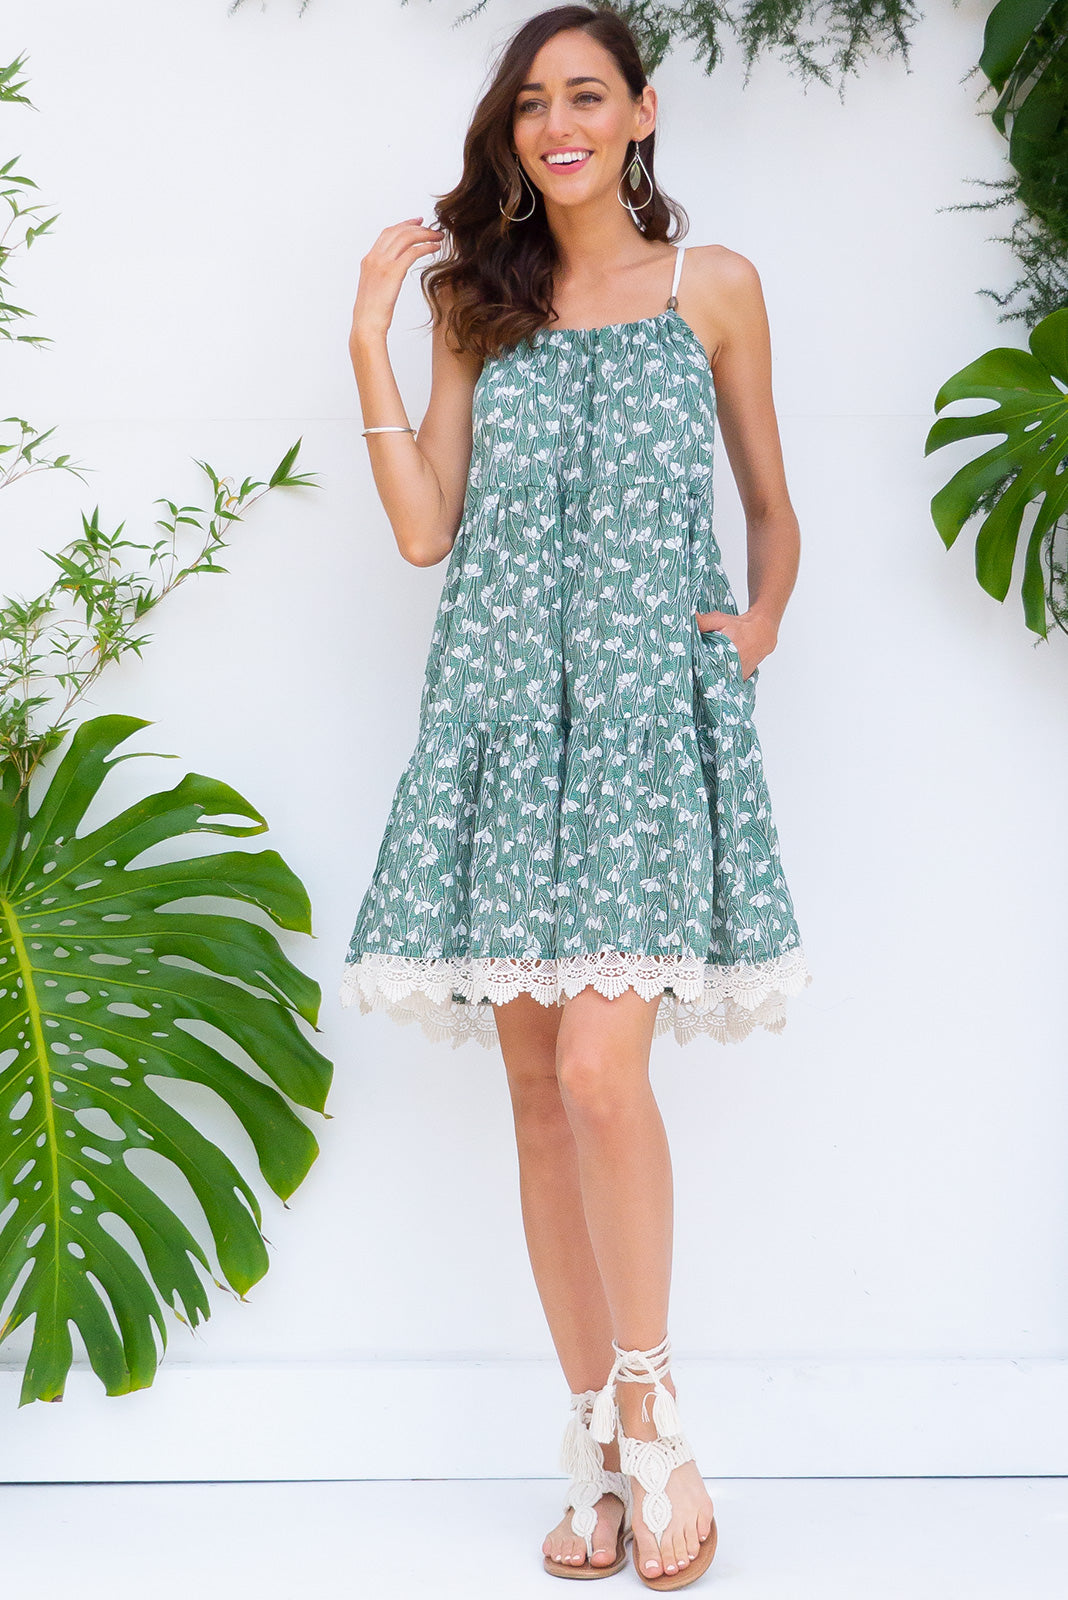 Santorini Sage Green tiered dress with an adjustable rope neckline, deep side pockets and cotton lace detailing in soft sage green snowdrop floral  print on 100% cotton